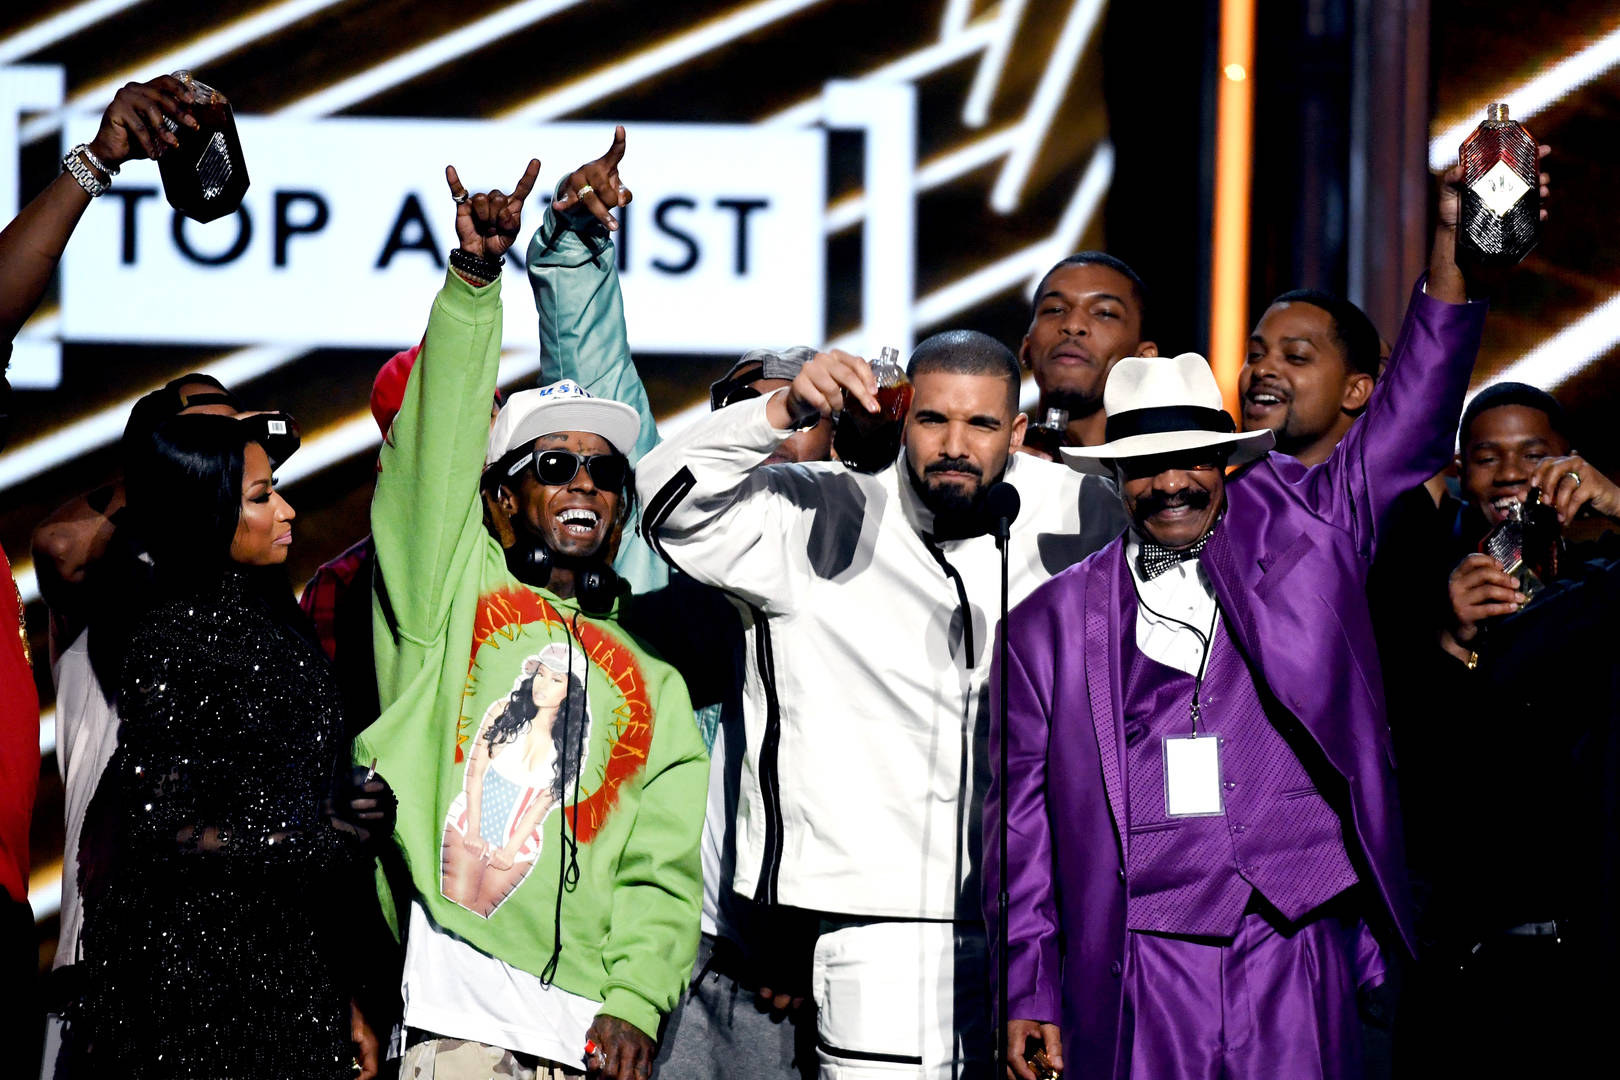 Rappers Nicki Minaj and Lil' Wayne look on as recording artist Drake accepts the Top Artist award onstage with his father Dennis Graham during the 2017 Billboard Music Awards at T-Mobile Arena on May 21, 2017 in Las Vegas, Nevada.